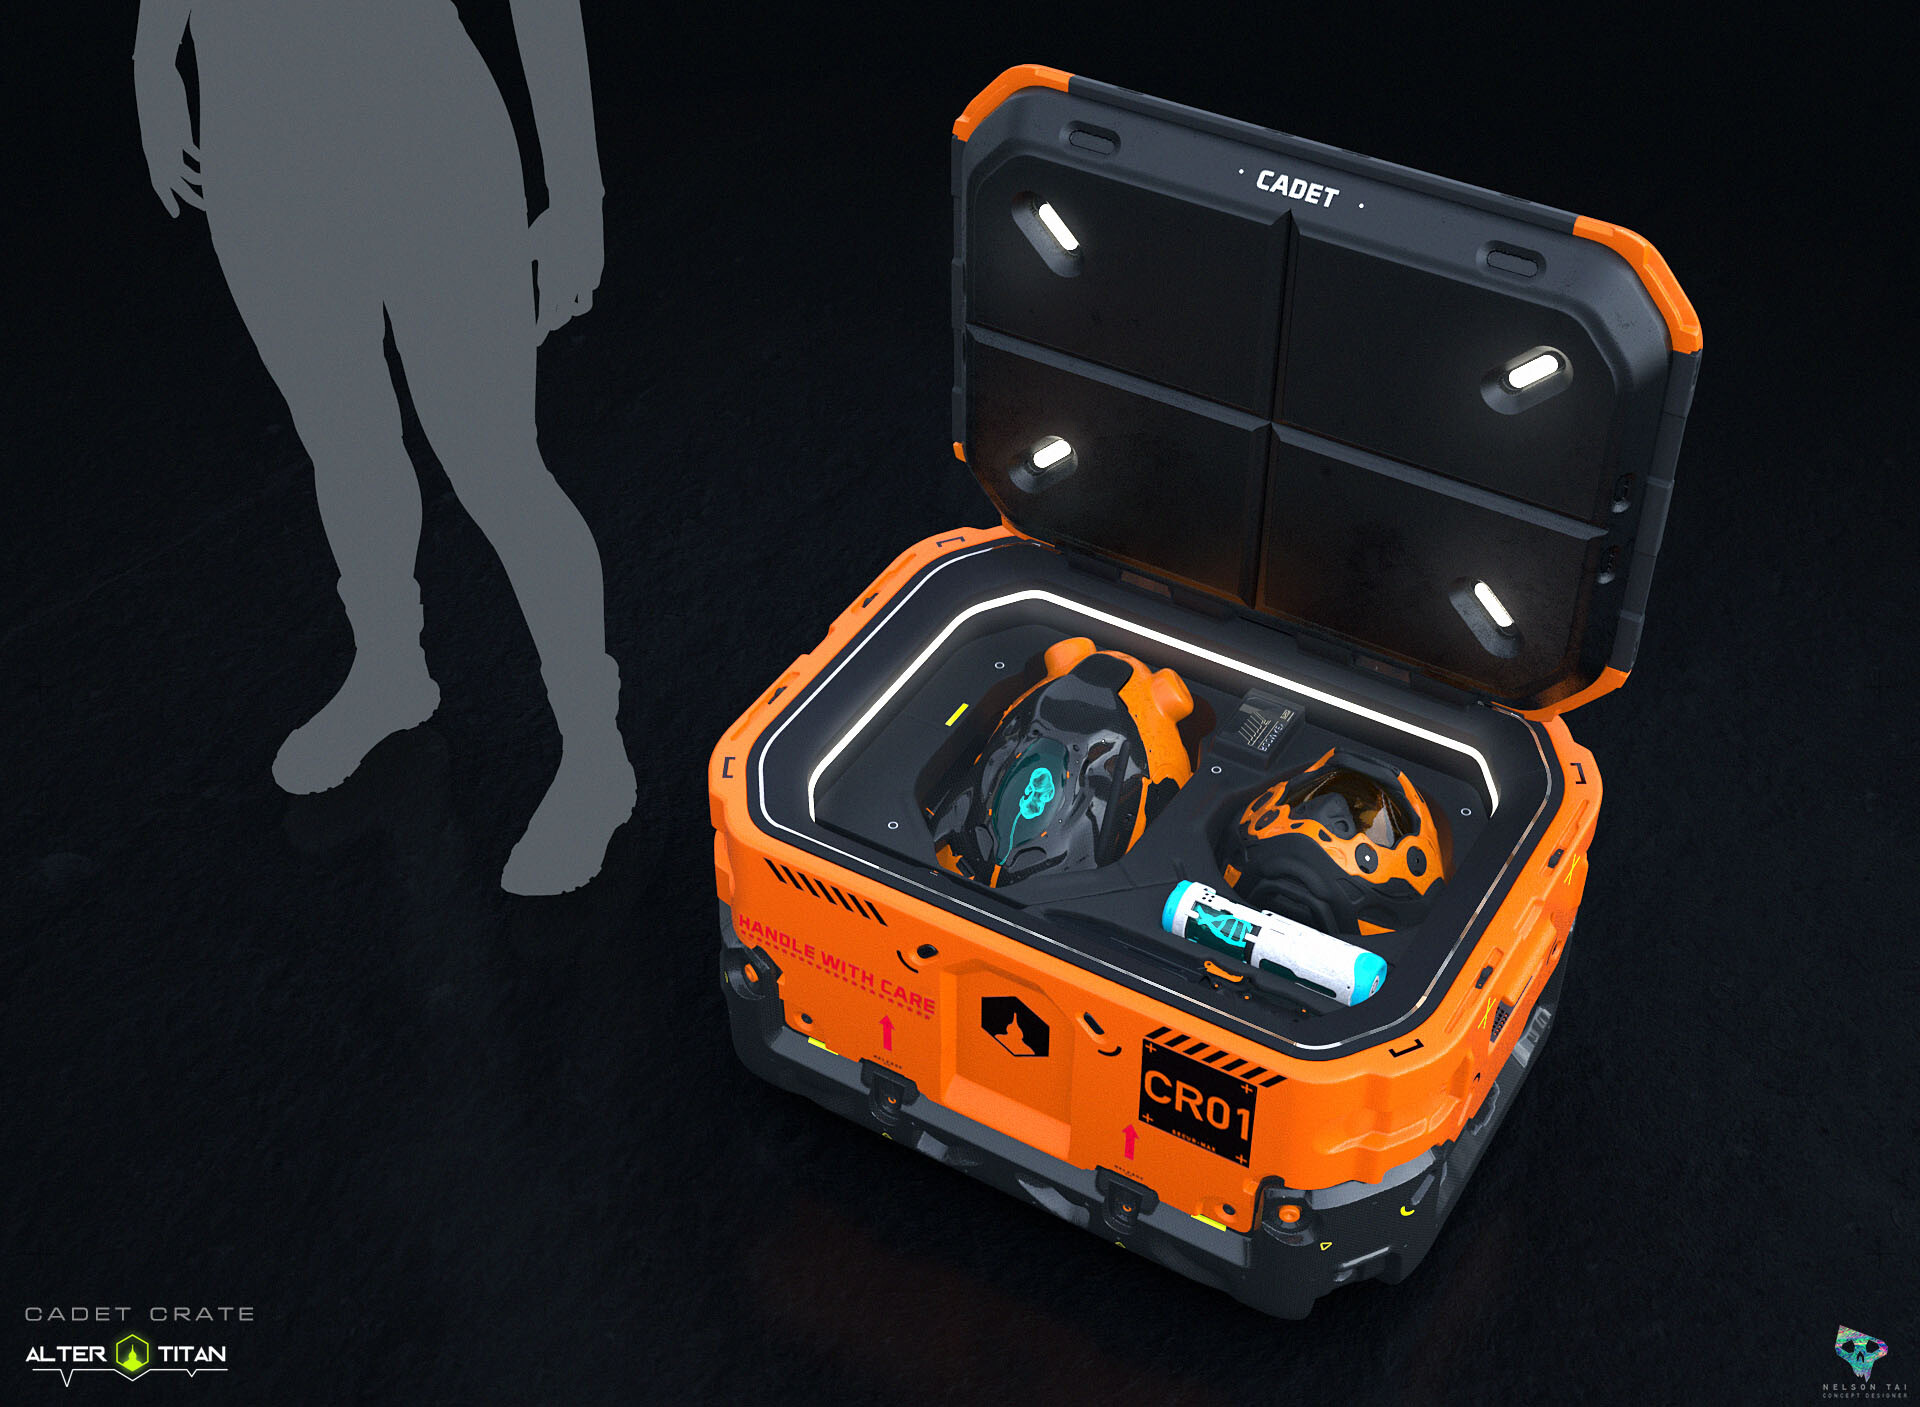 The Cadet Crate - Comes with the basics for your Titan